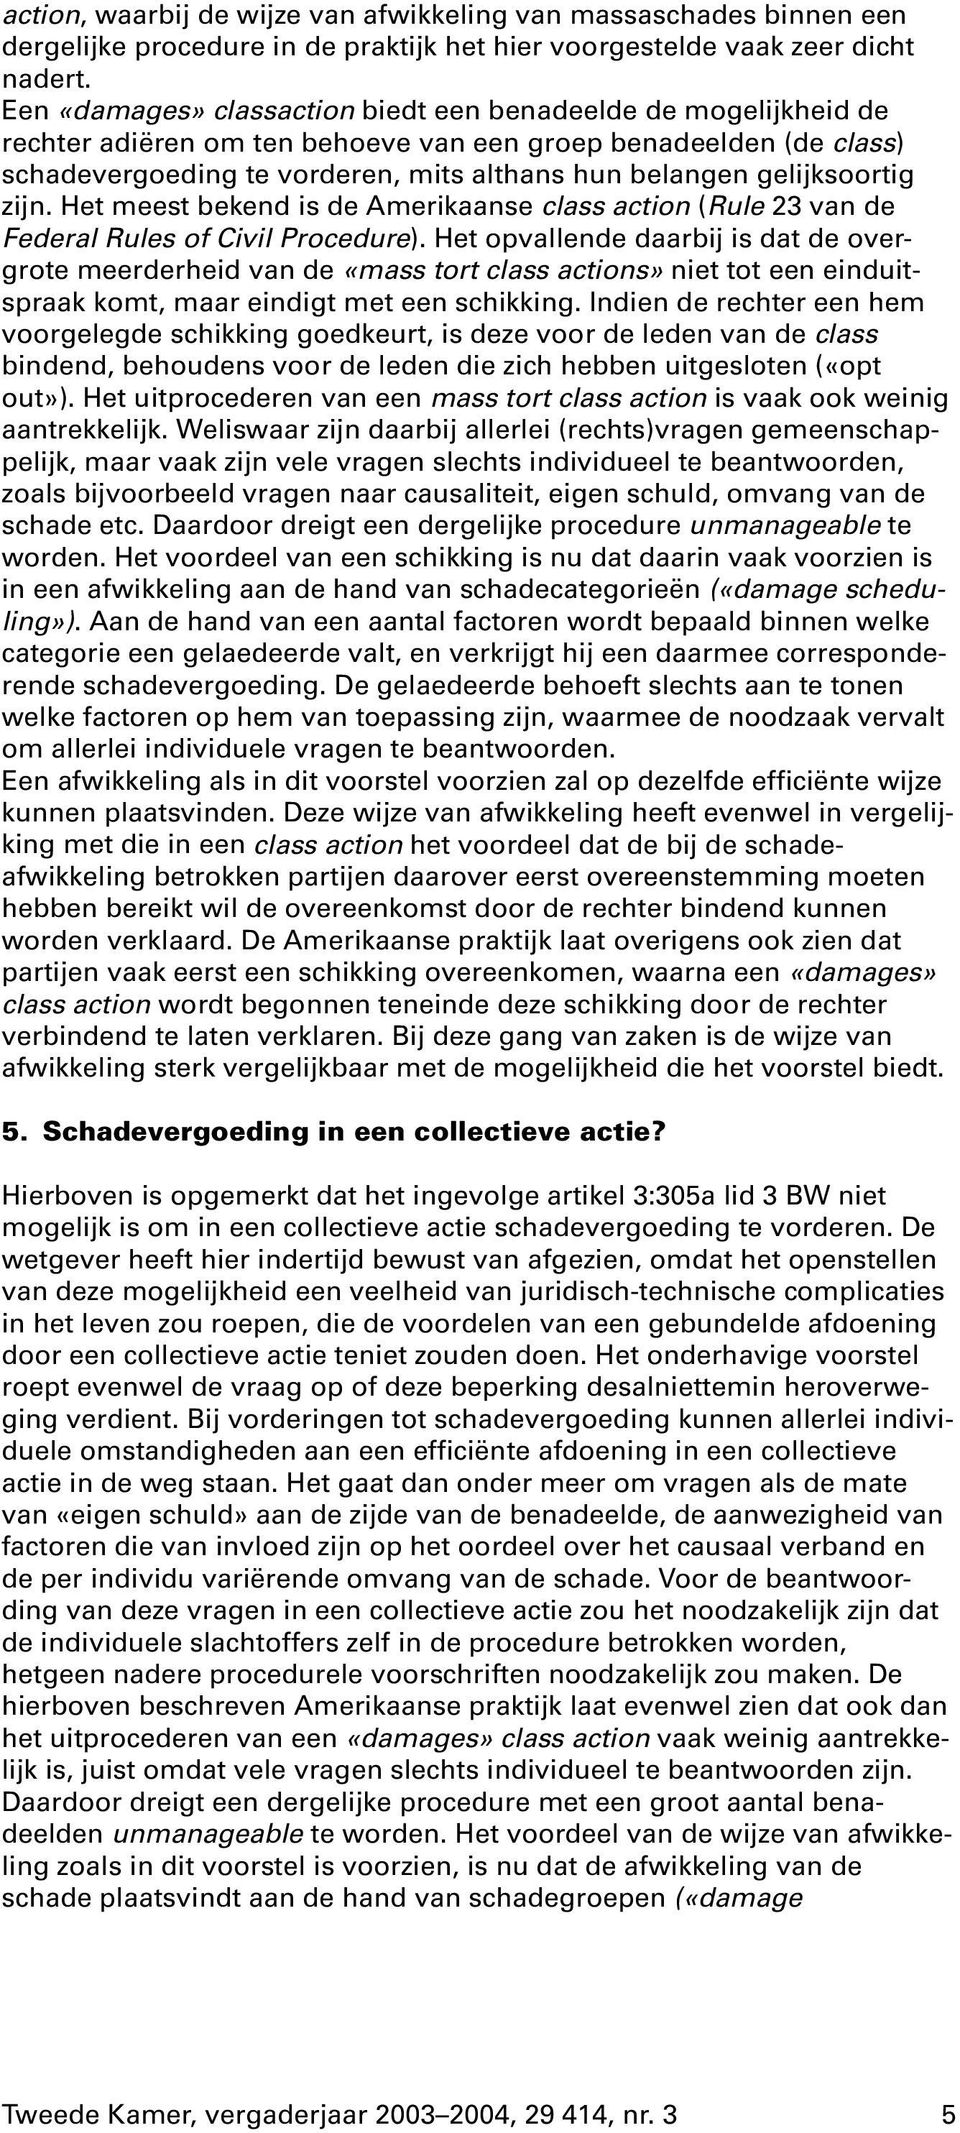 gelijksoortig zijn. Het meest bekend is de Amerikaanse class action (Rule 23 van de Federal Rules of Civil Procedure).